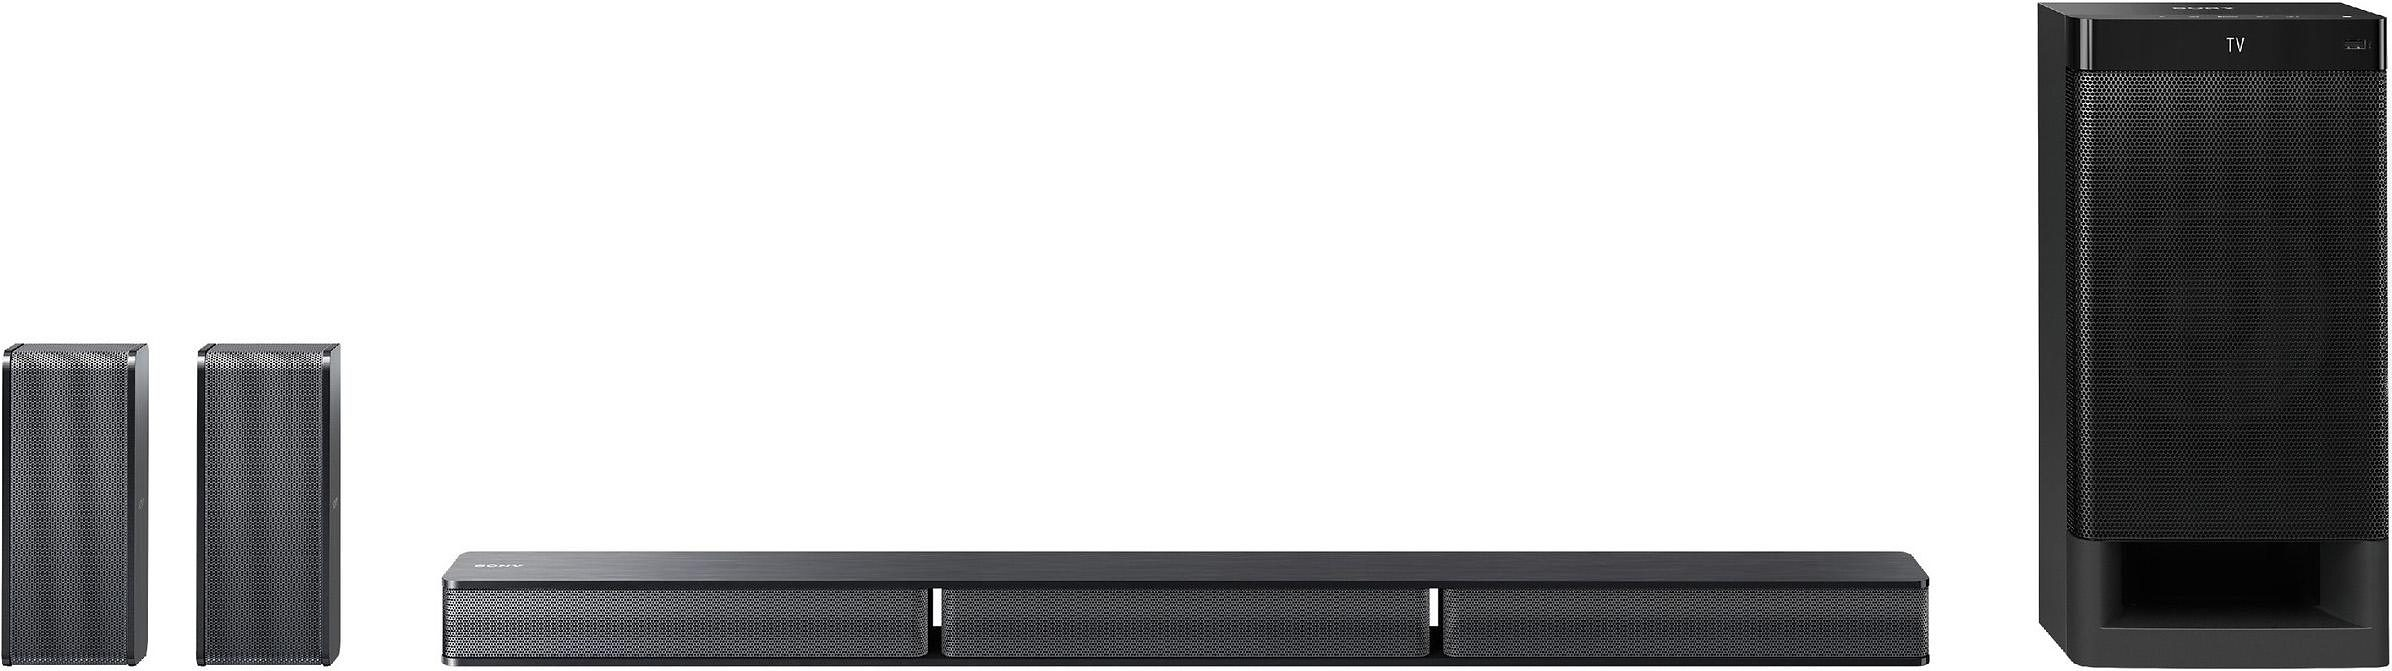 Sony HT-RT3 5.1 Soundbar, Bluetooth, NFC, USB